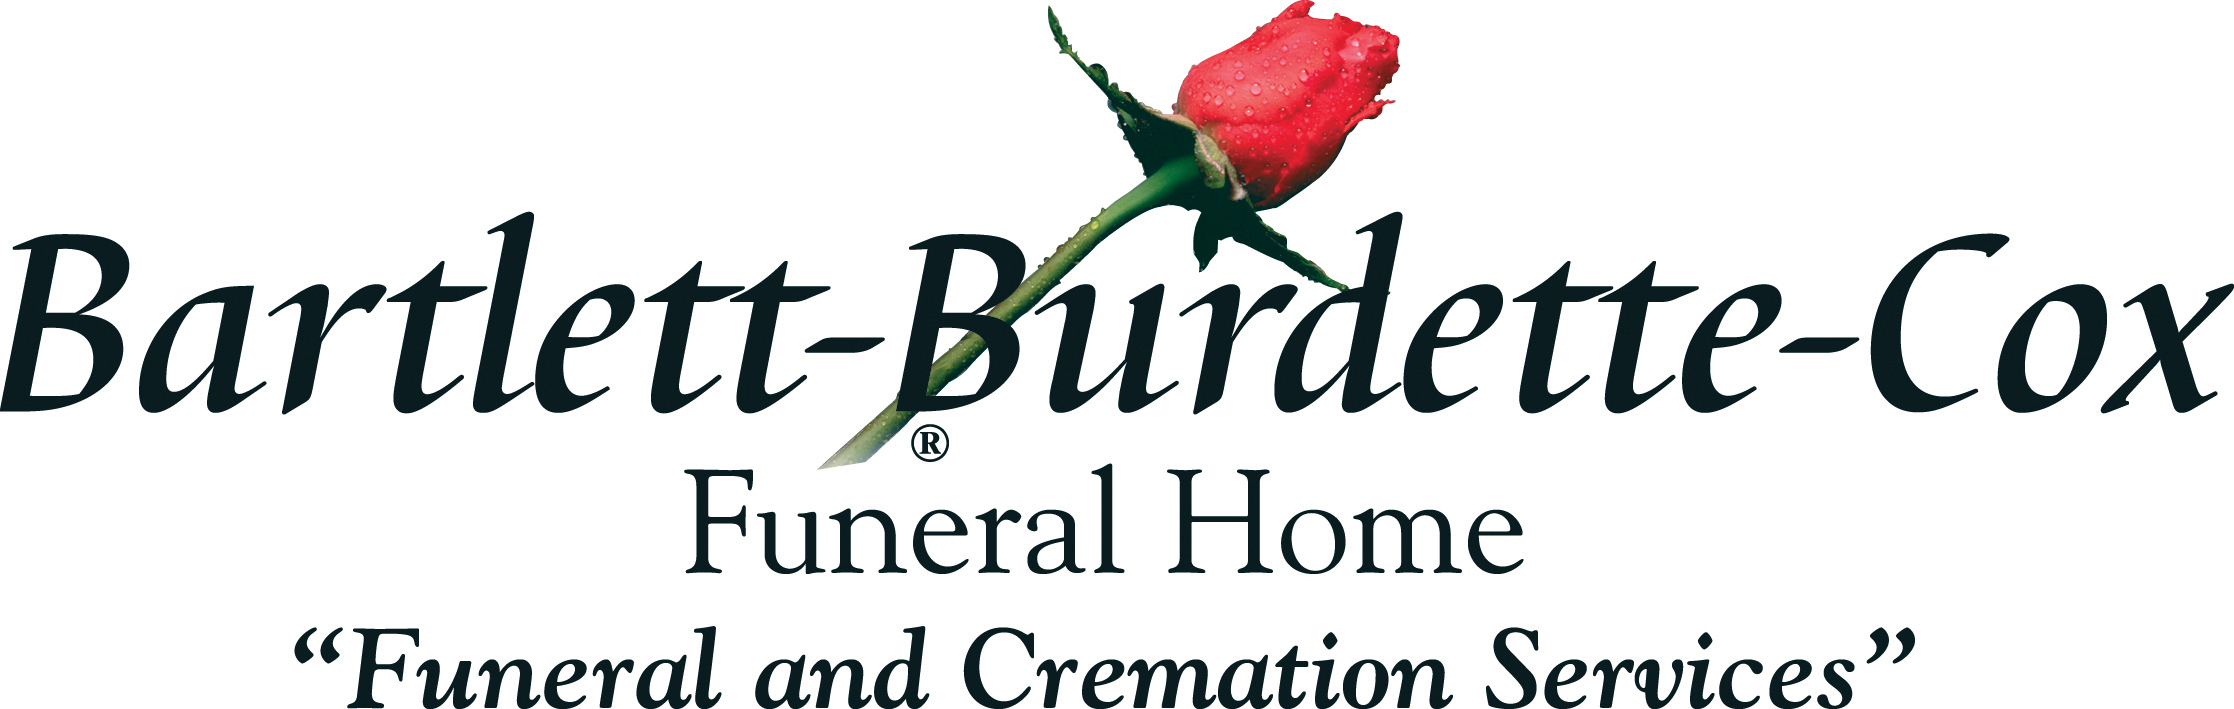 Bartlett Funeral Home Charleston Wv